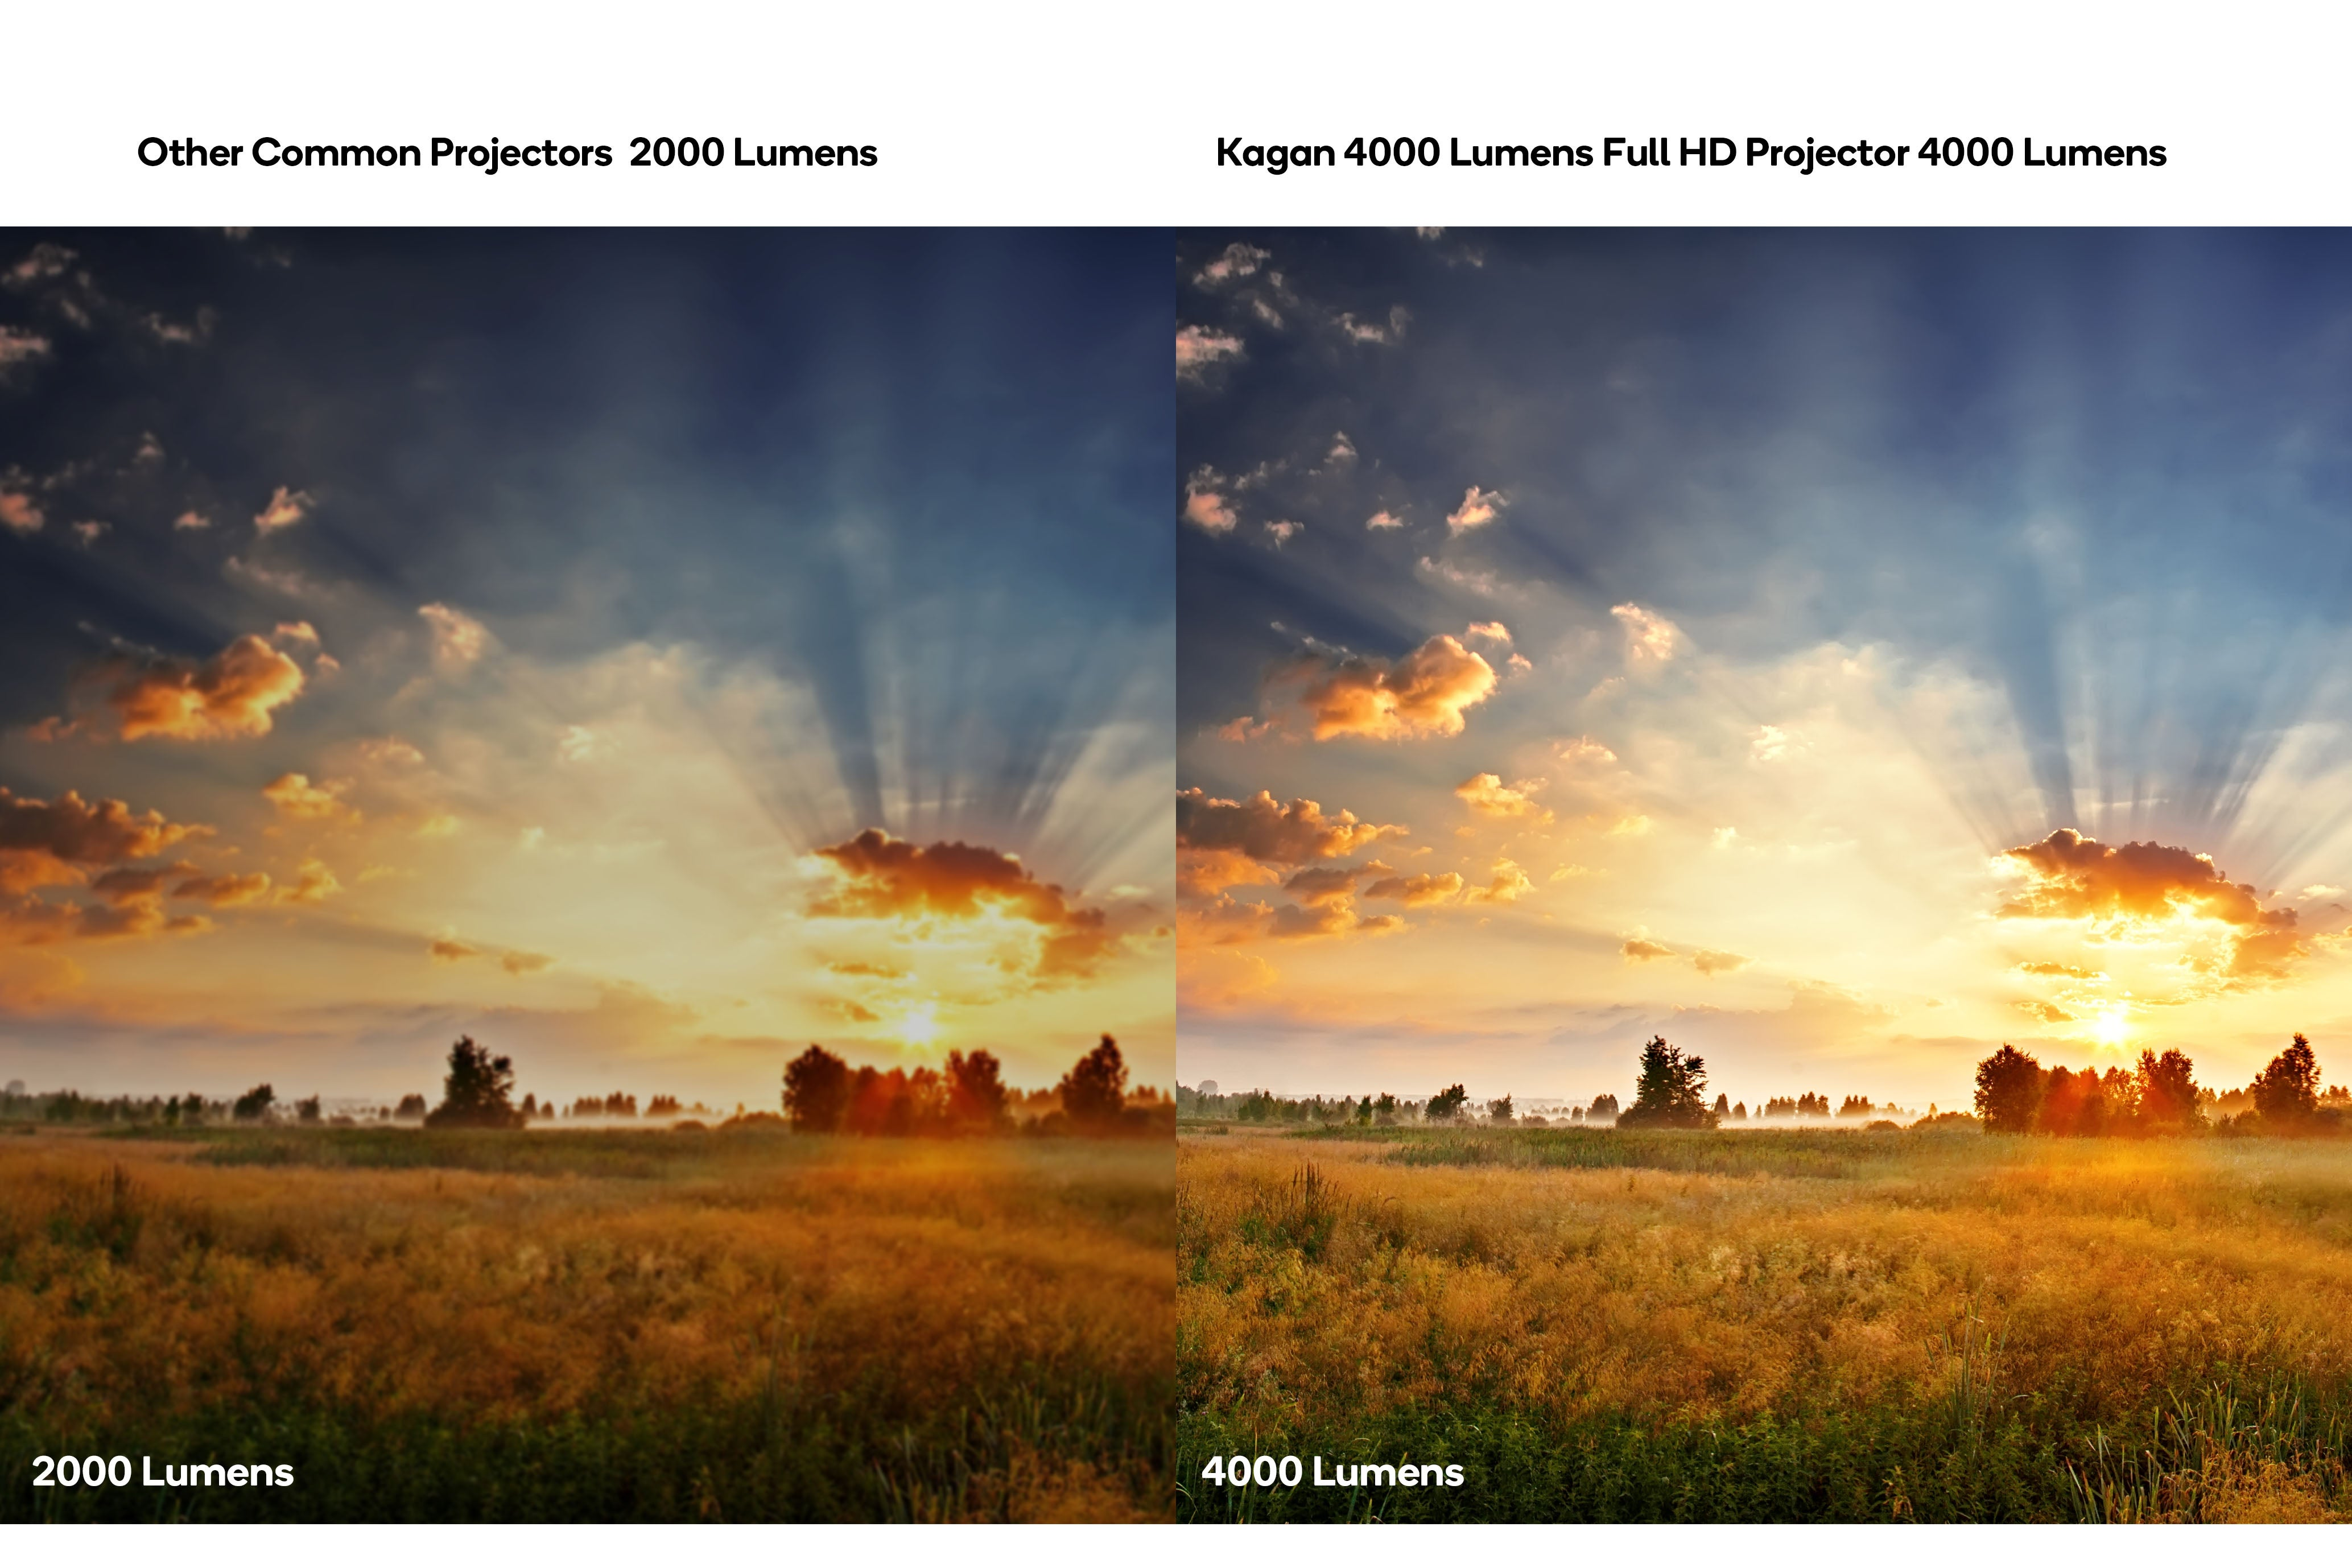 Kogan 4000 Lumens Full HD Projector (F600) Projection Size